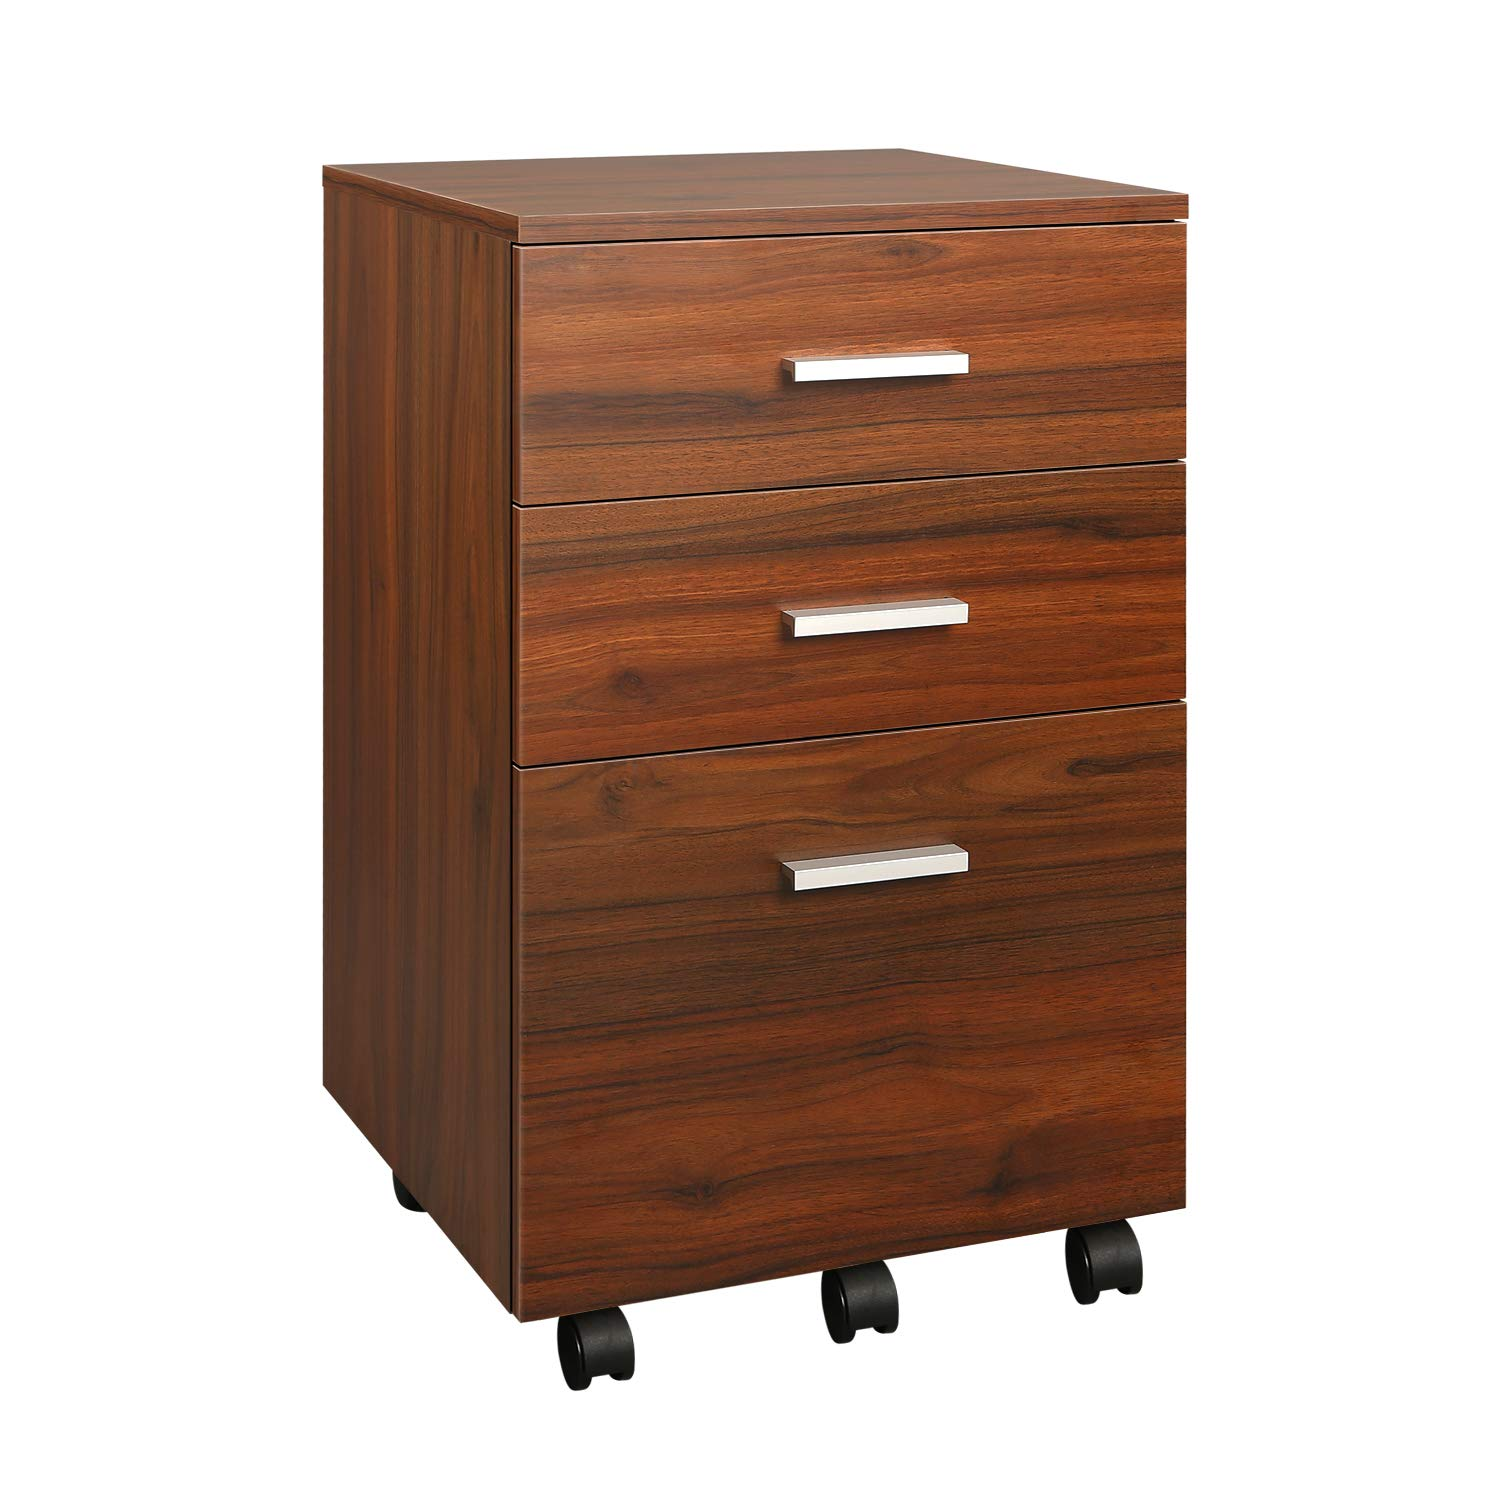 DEVAISE 3 Drawer Mobile File Cabinet, Rolling Wood Cabinet for Home Office, Walnut by DEVAISE